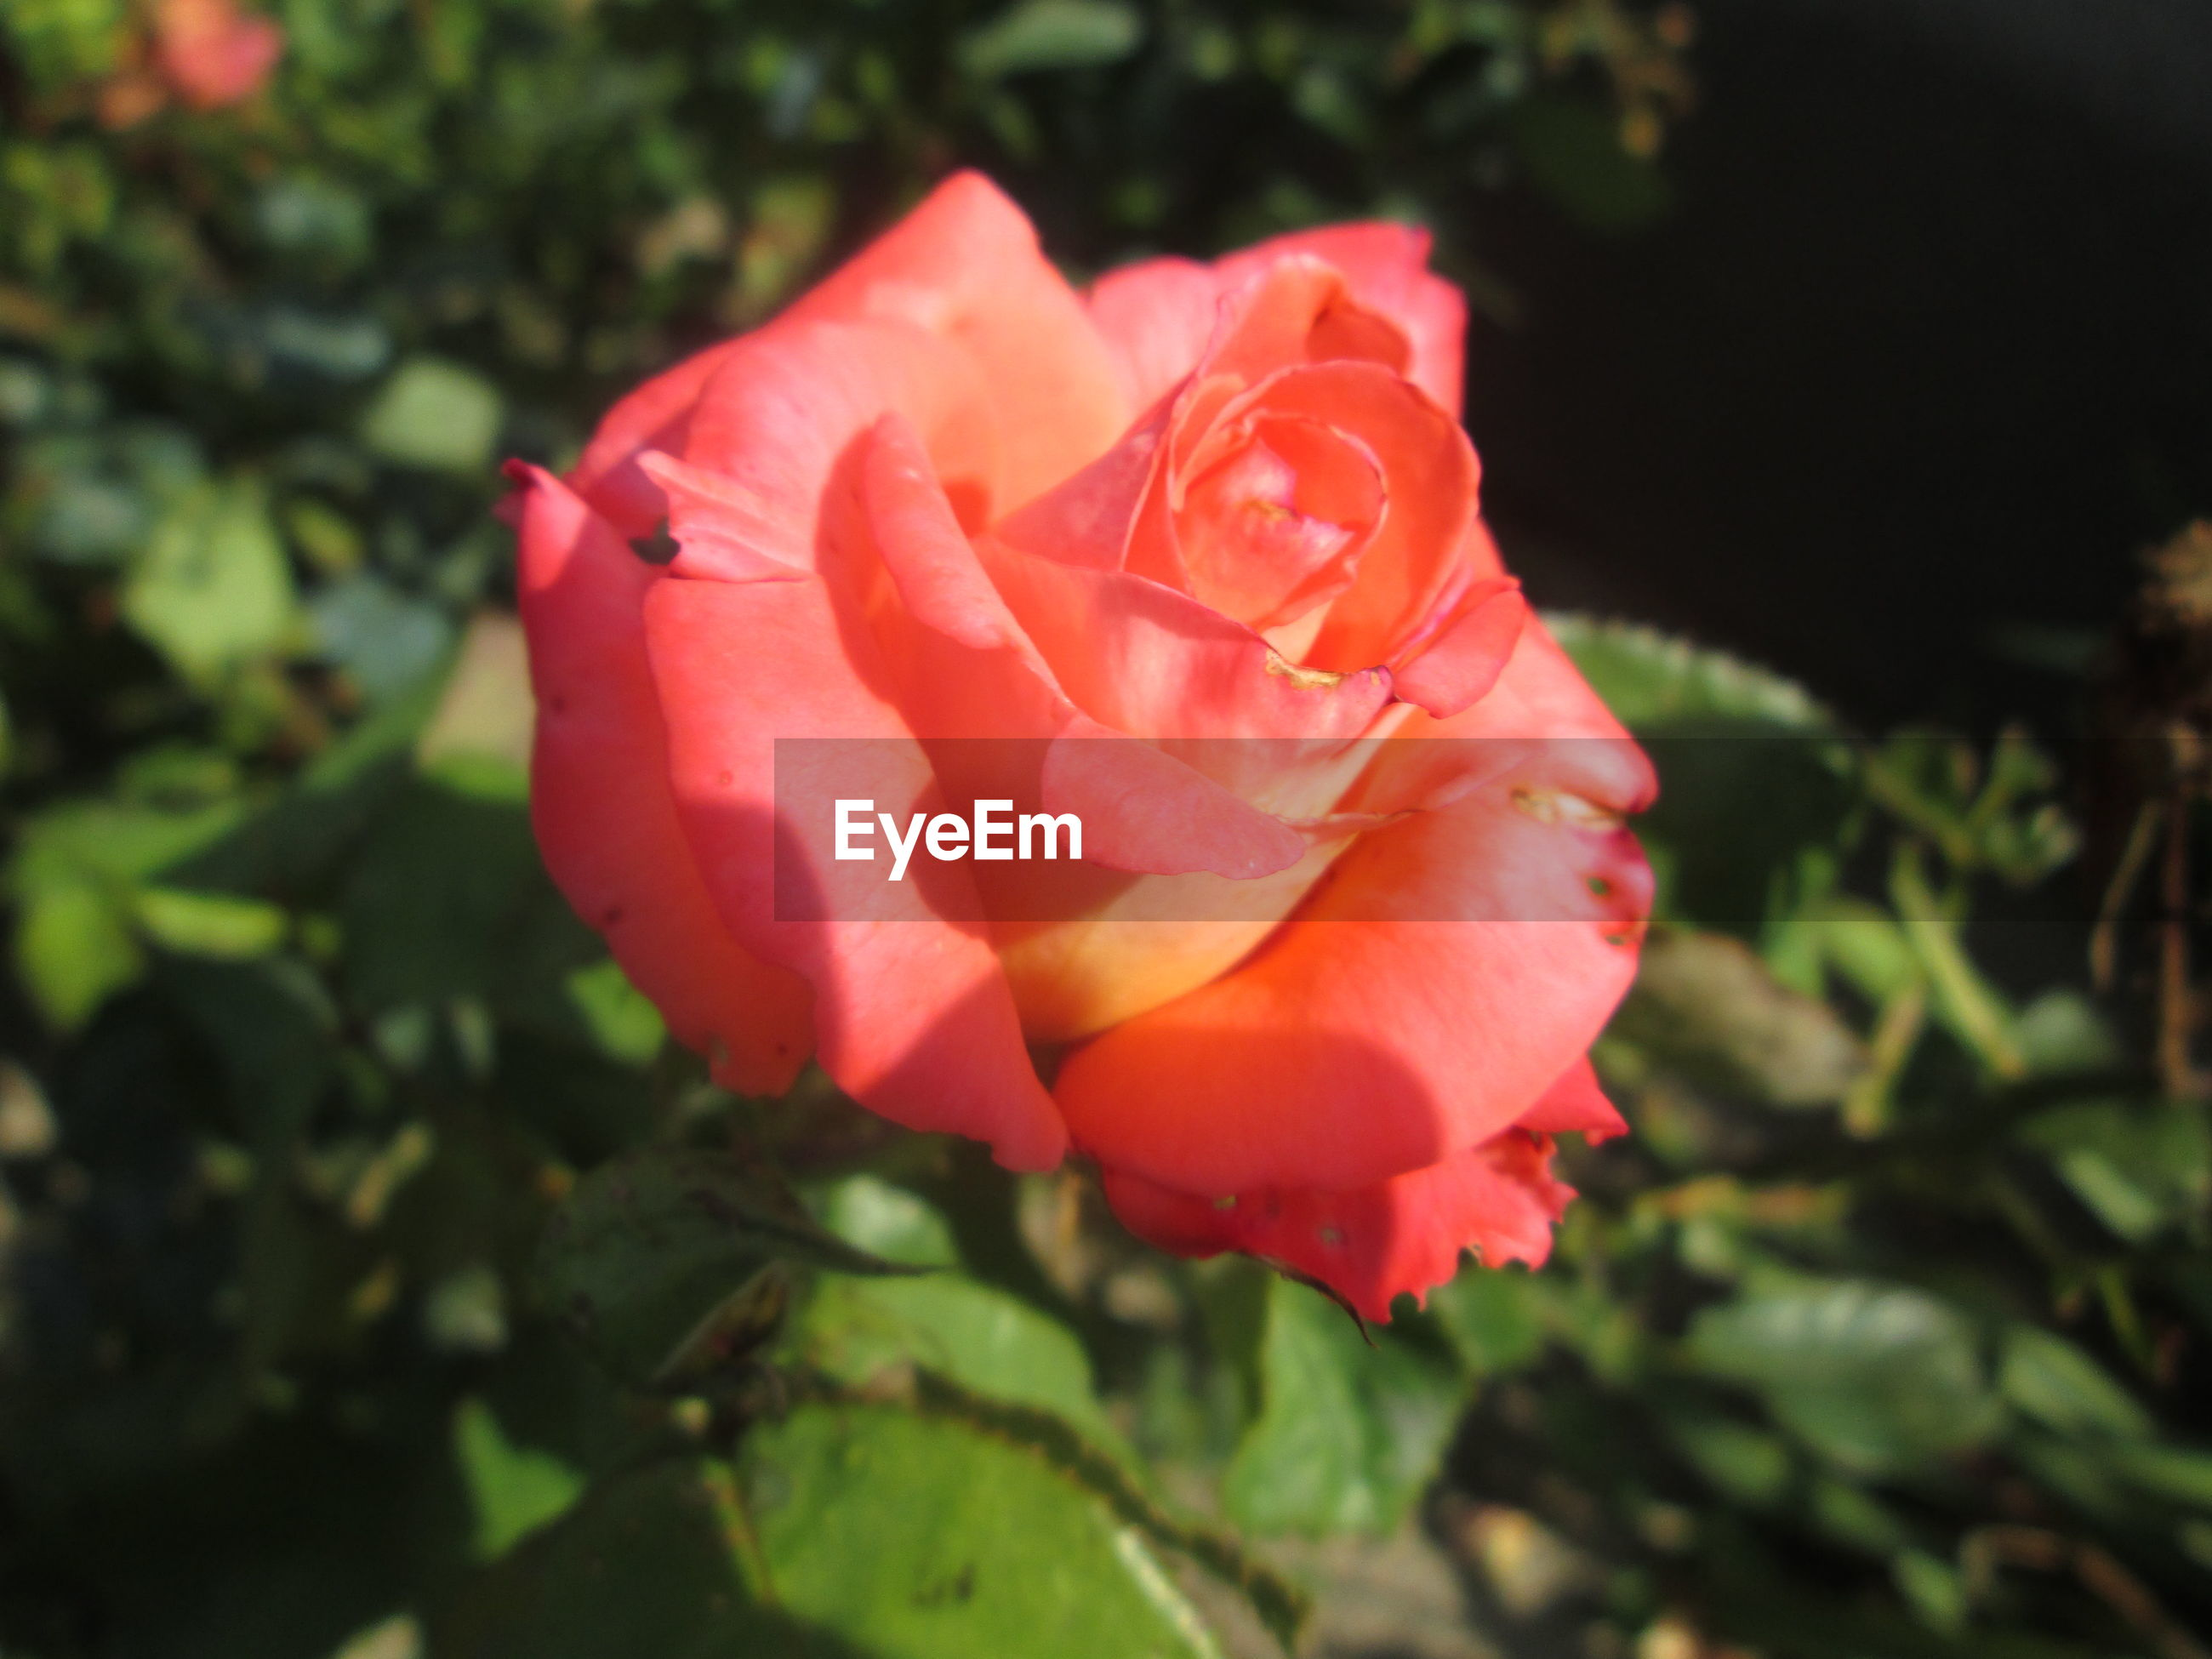 flower, petal, flower head, fragility, freshness, rose - flower, growth, beauty in nature, close-up, single flower, focus on foreground, blooming, nature, pink color, rose, plant, red, in bloom, park - man made space, leaf